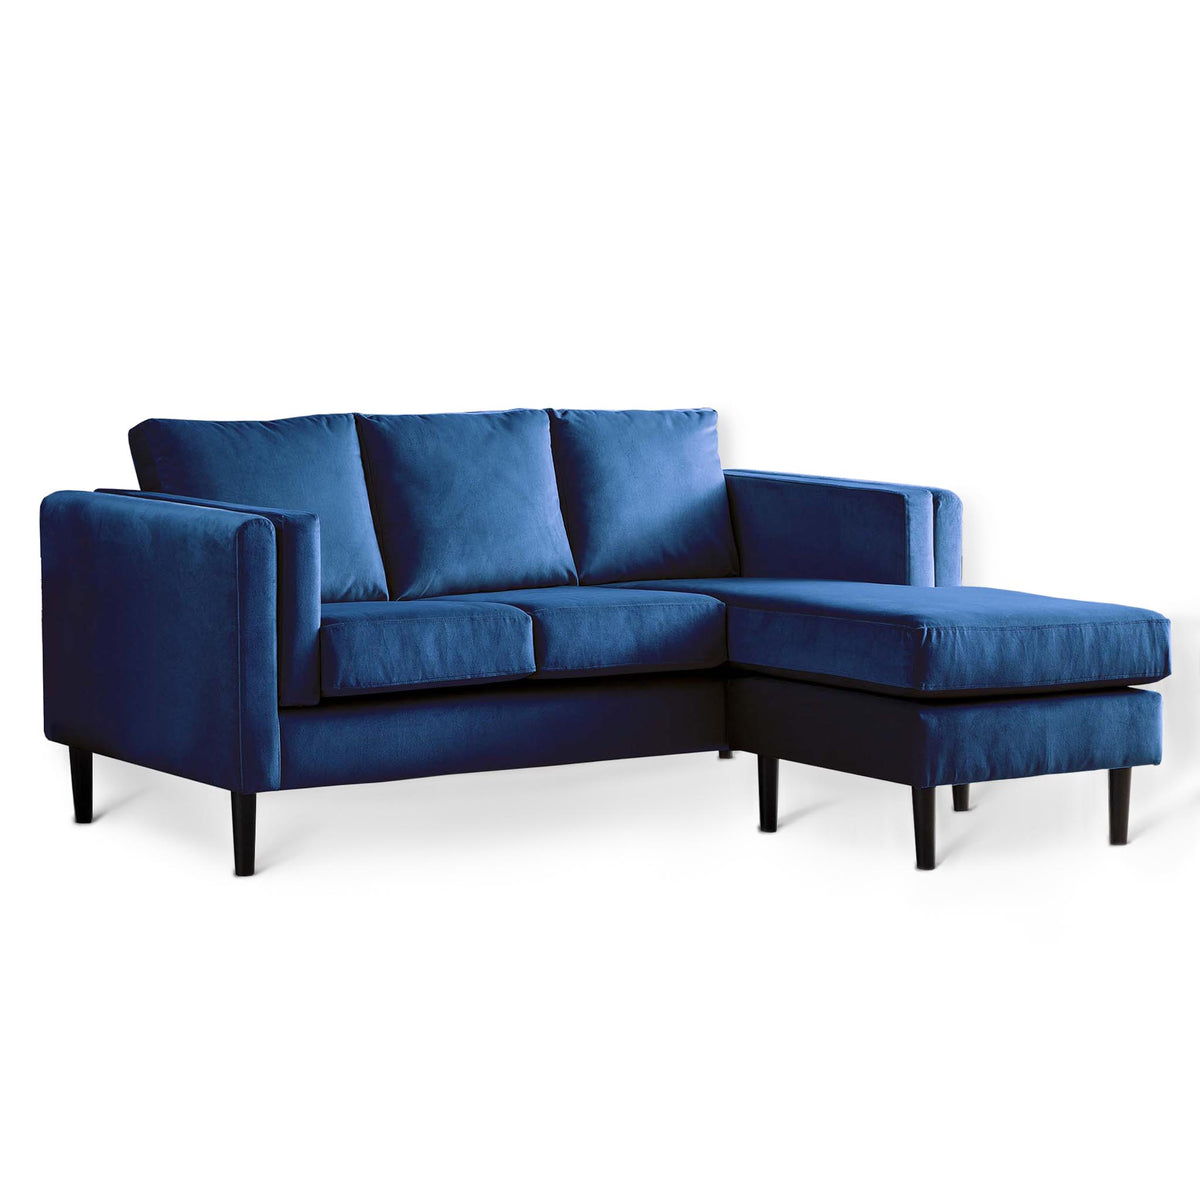 Sandringham Navy Velvet Corner Chaise Sofa from Roseland Furniture